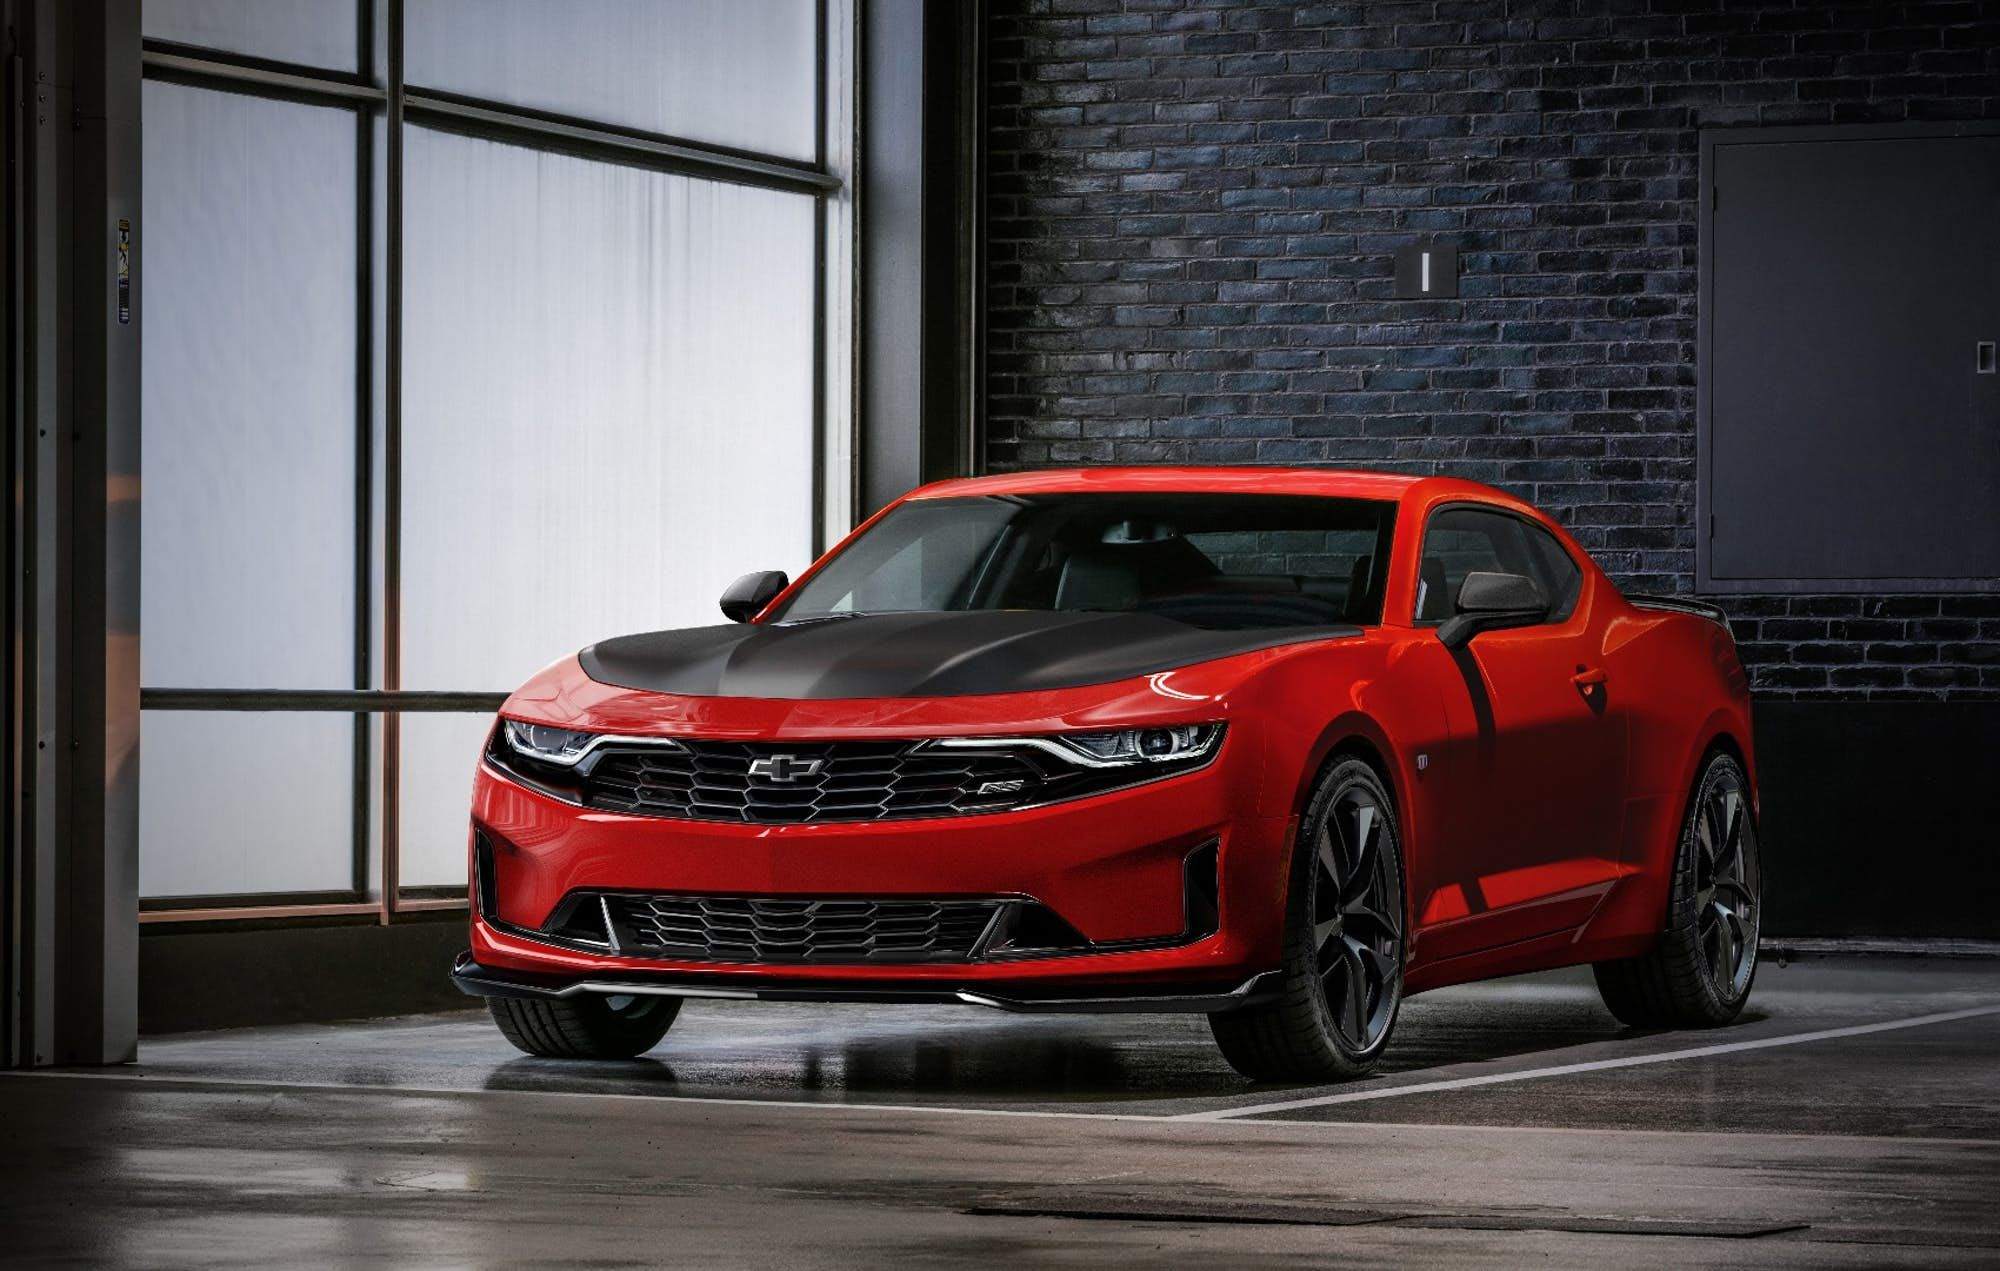 Chevy Gives The 2019 Camaro A New Face And New Options Chevrolet